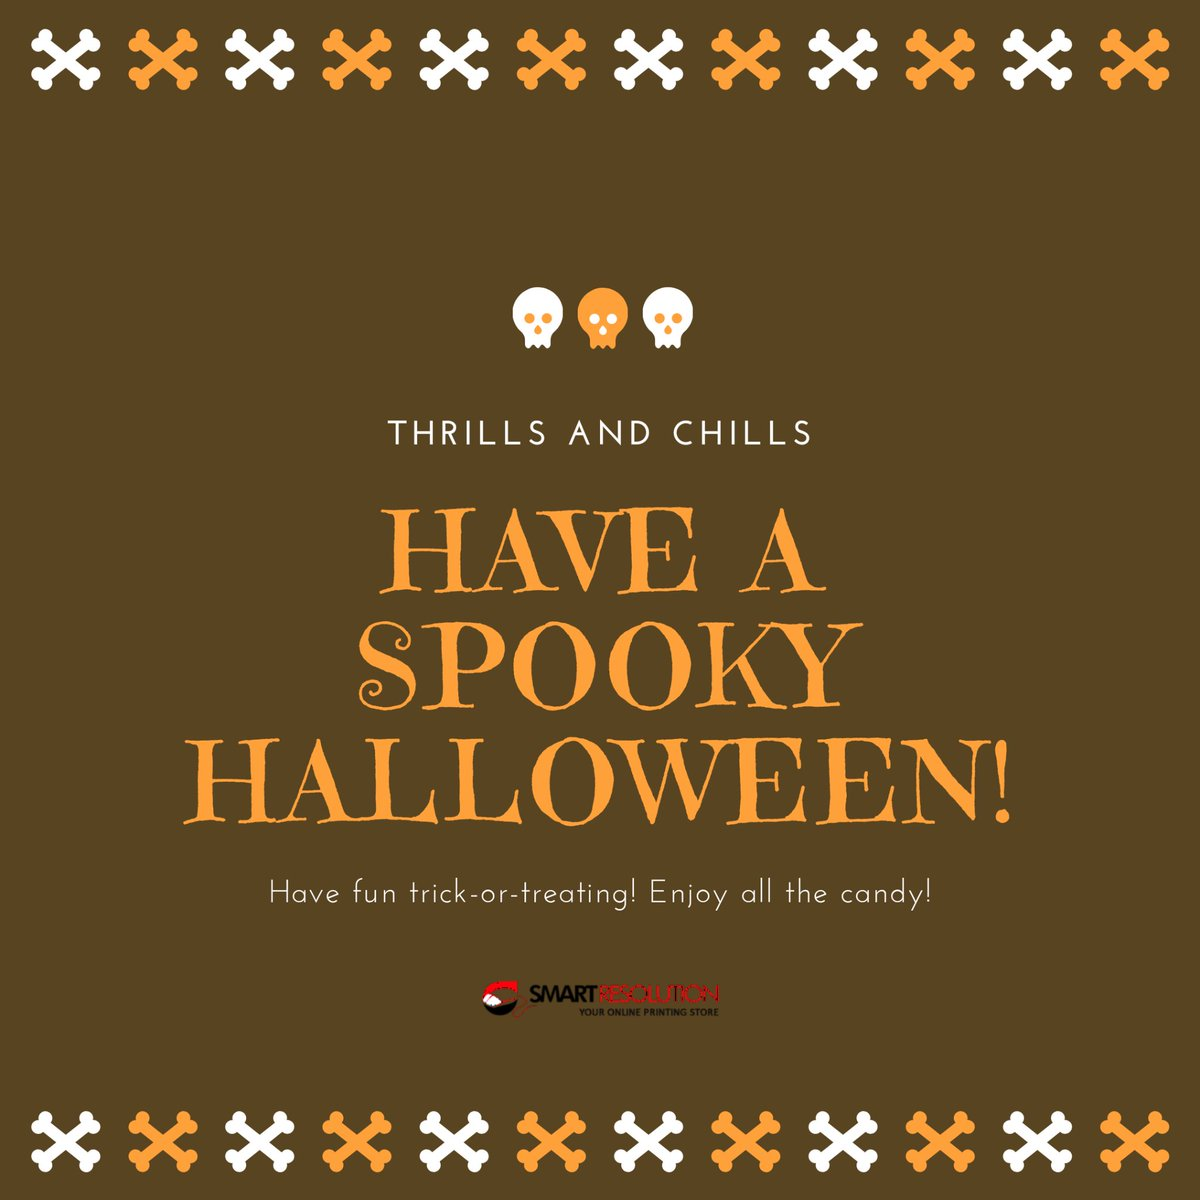 Hope your Halloween is exactly as spooky as you want it to be – no more, and no less. #HappyHalloween2020